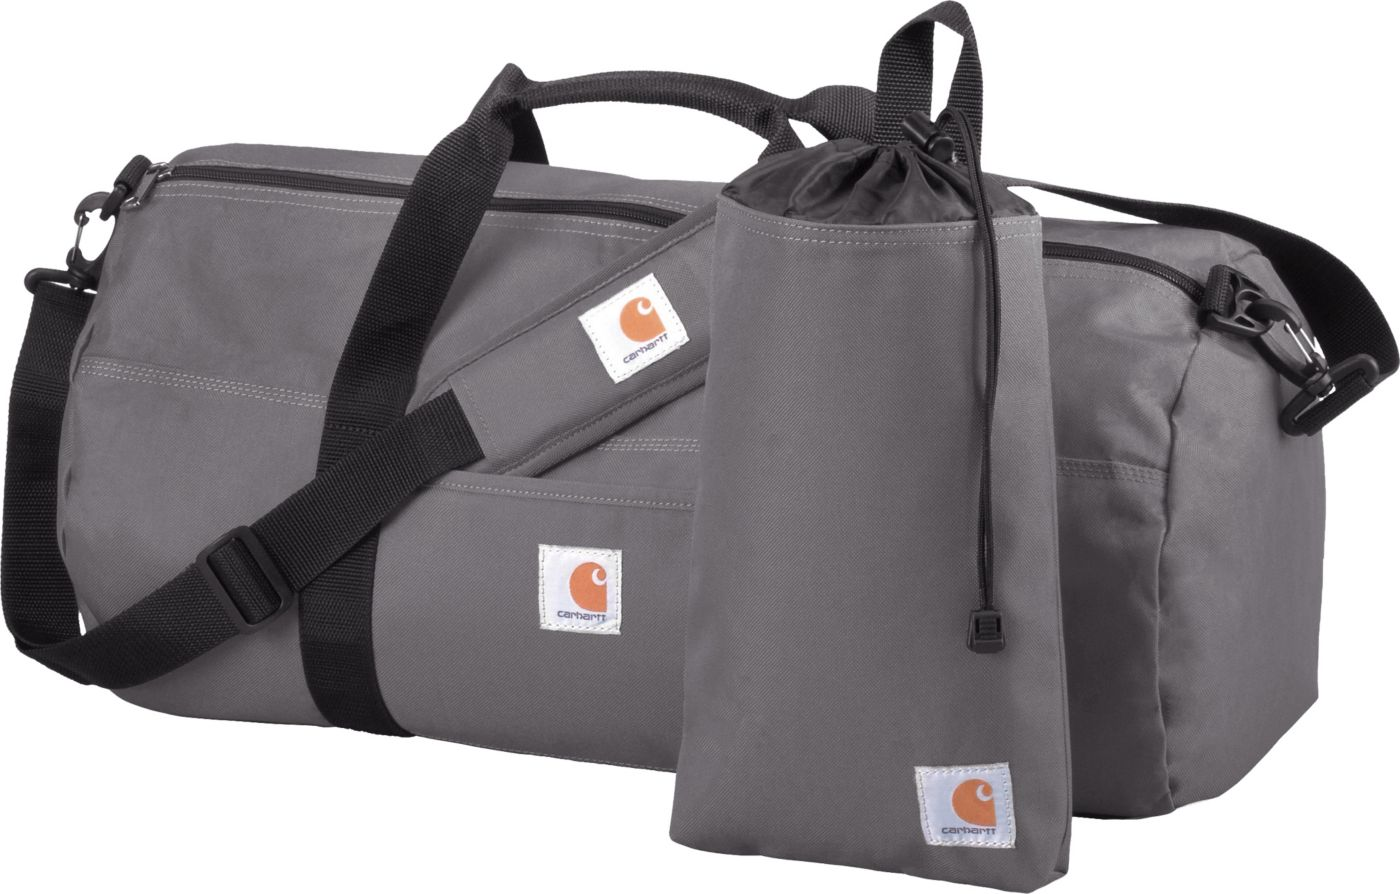 Carhartt Trade Series Duffel and Utility Pouch